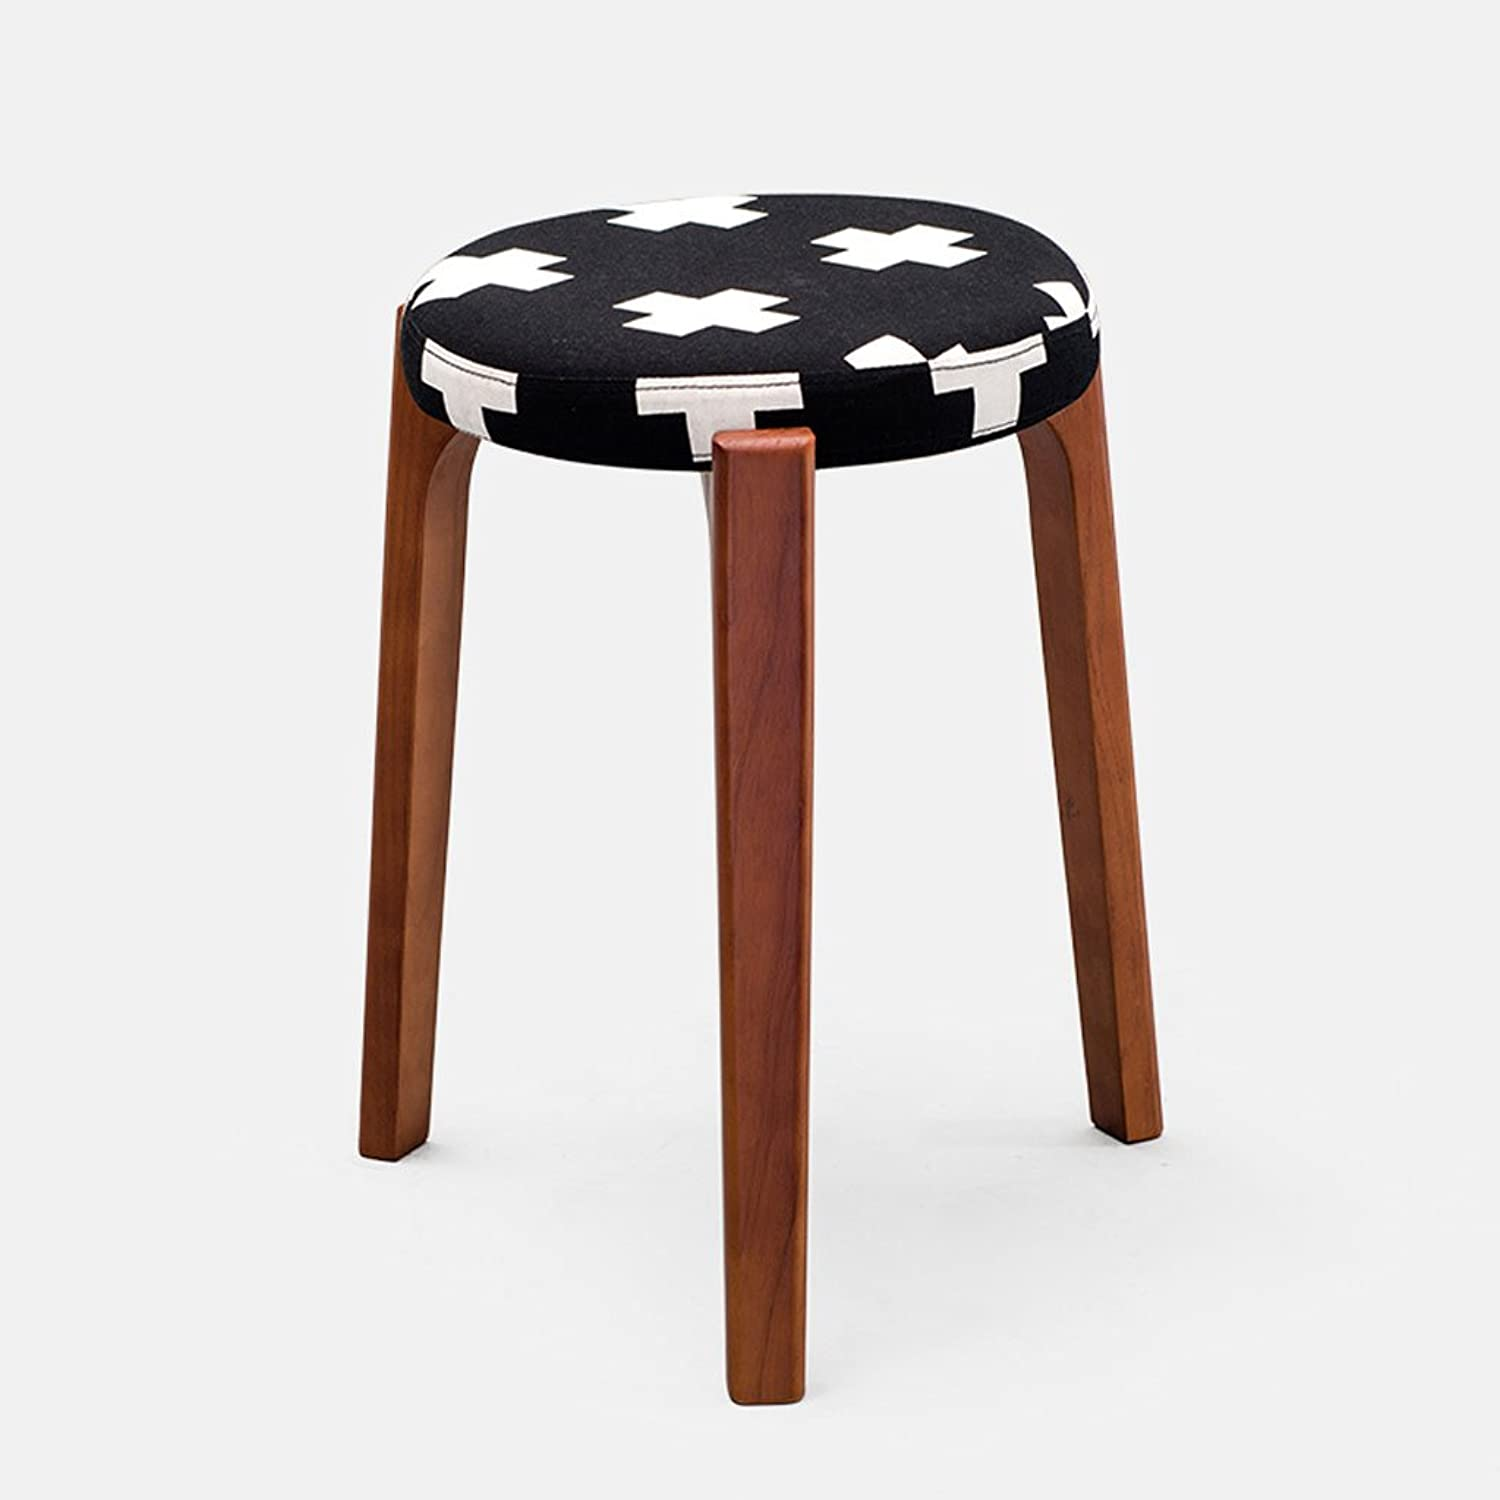 TXXM Barstools Small Stool Fashion Solid Wood Creative Table Stool Household Dressing Stool Stool Living Room Simple Cloth Bench (color   A)